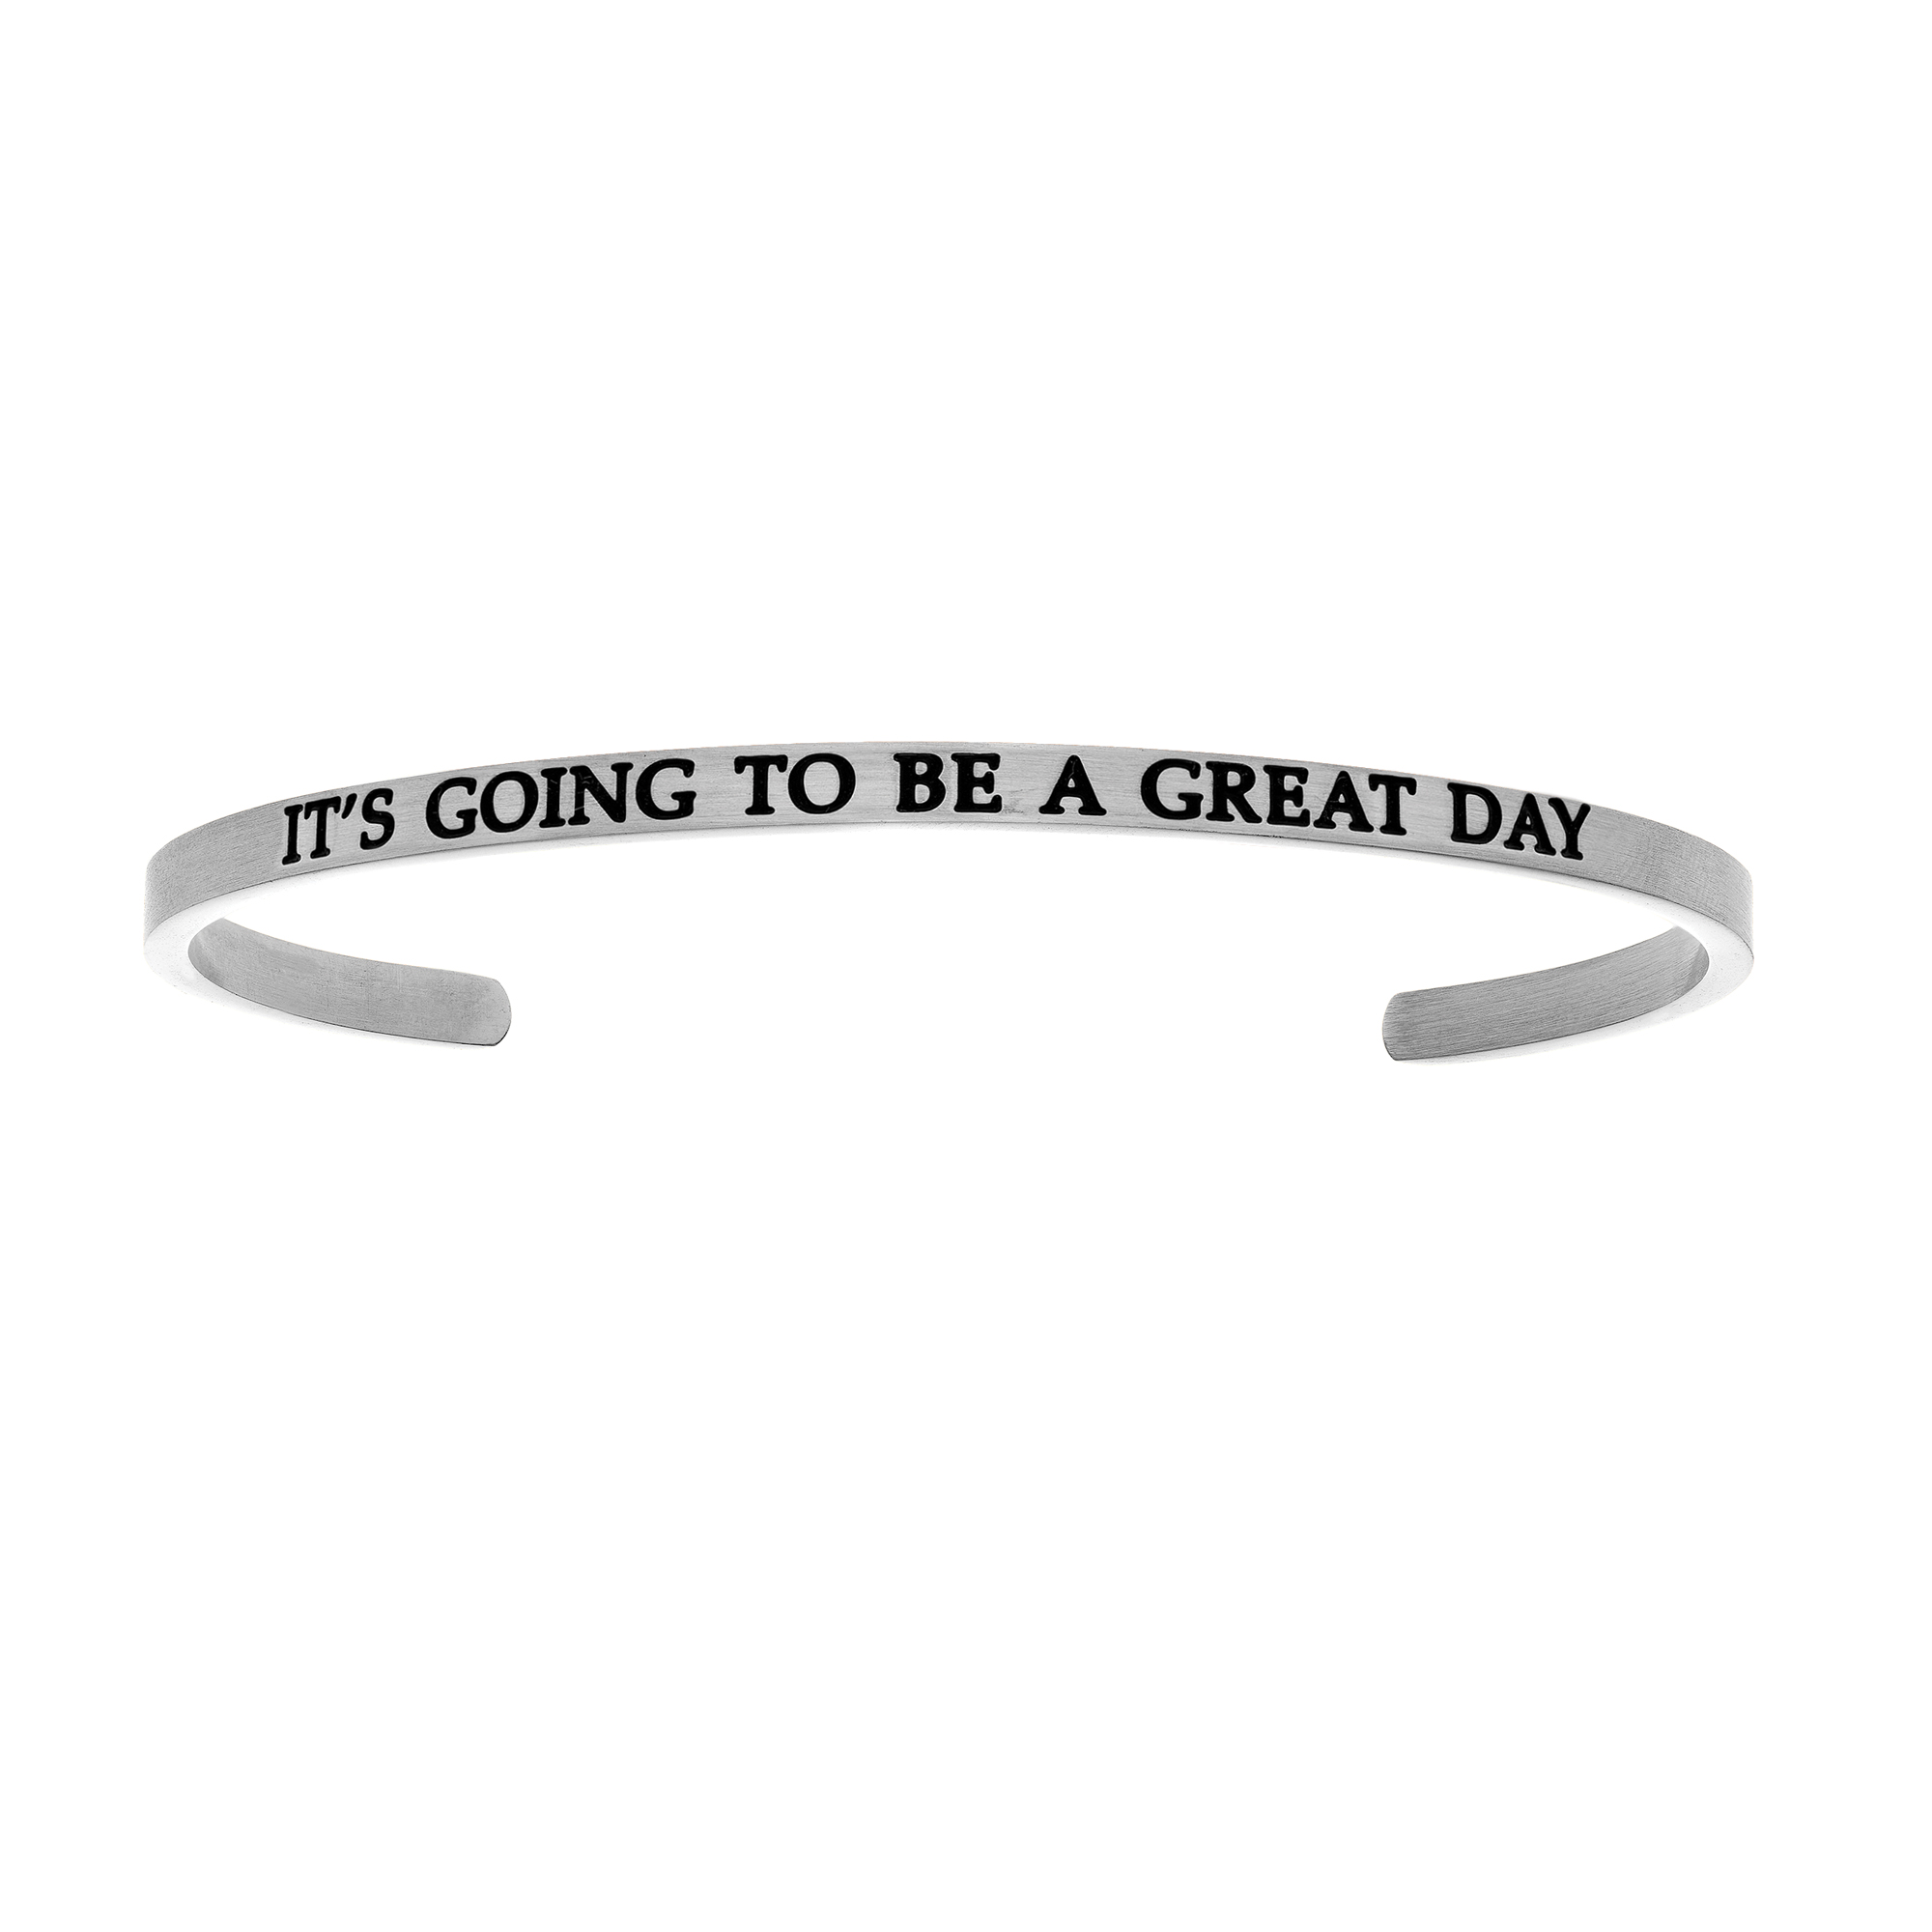 Intuitions Stainless Steel IT'S GOING TO BE A GREAT DAY Diamond Accent Cuff Bangle Bracelet, 7″